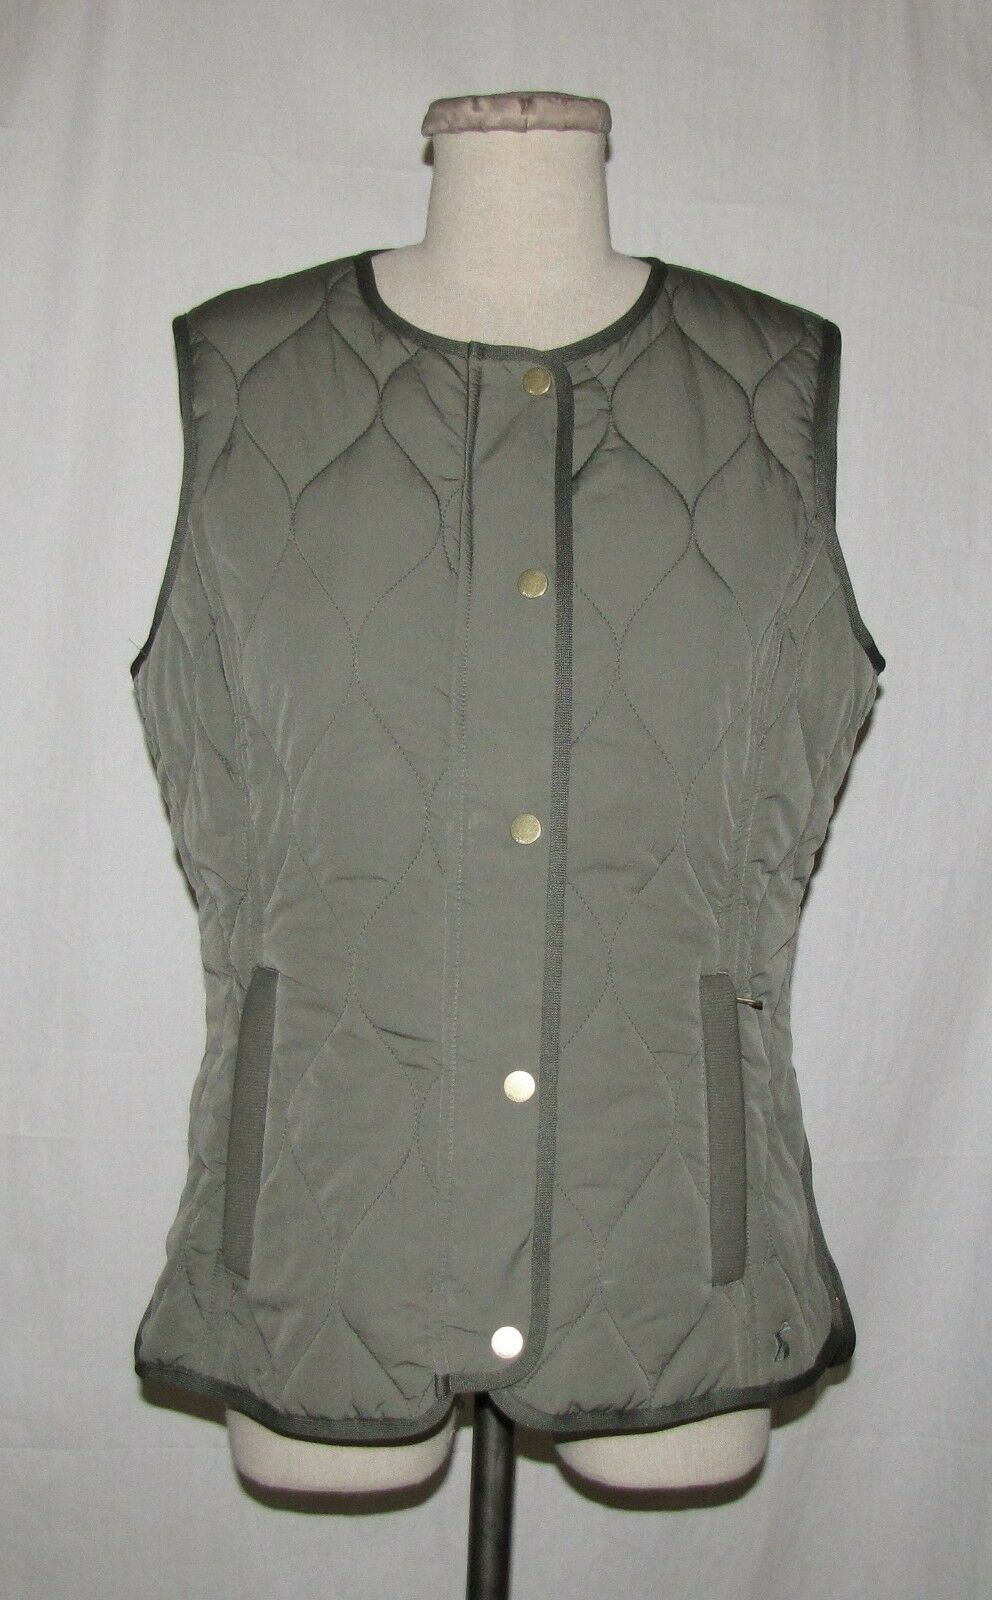 Joules  Jinty  Soft Khaki Oval Quilted Collarless Hidden Zip Vest Size 10 NWT